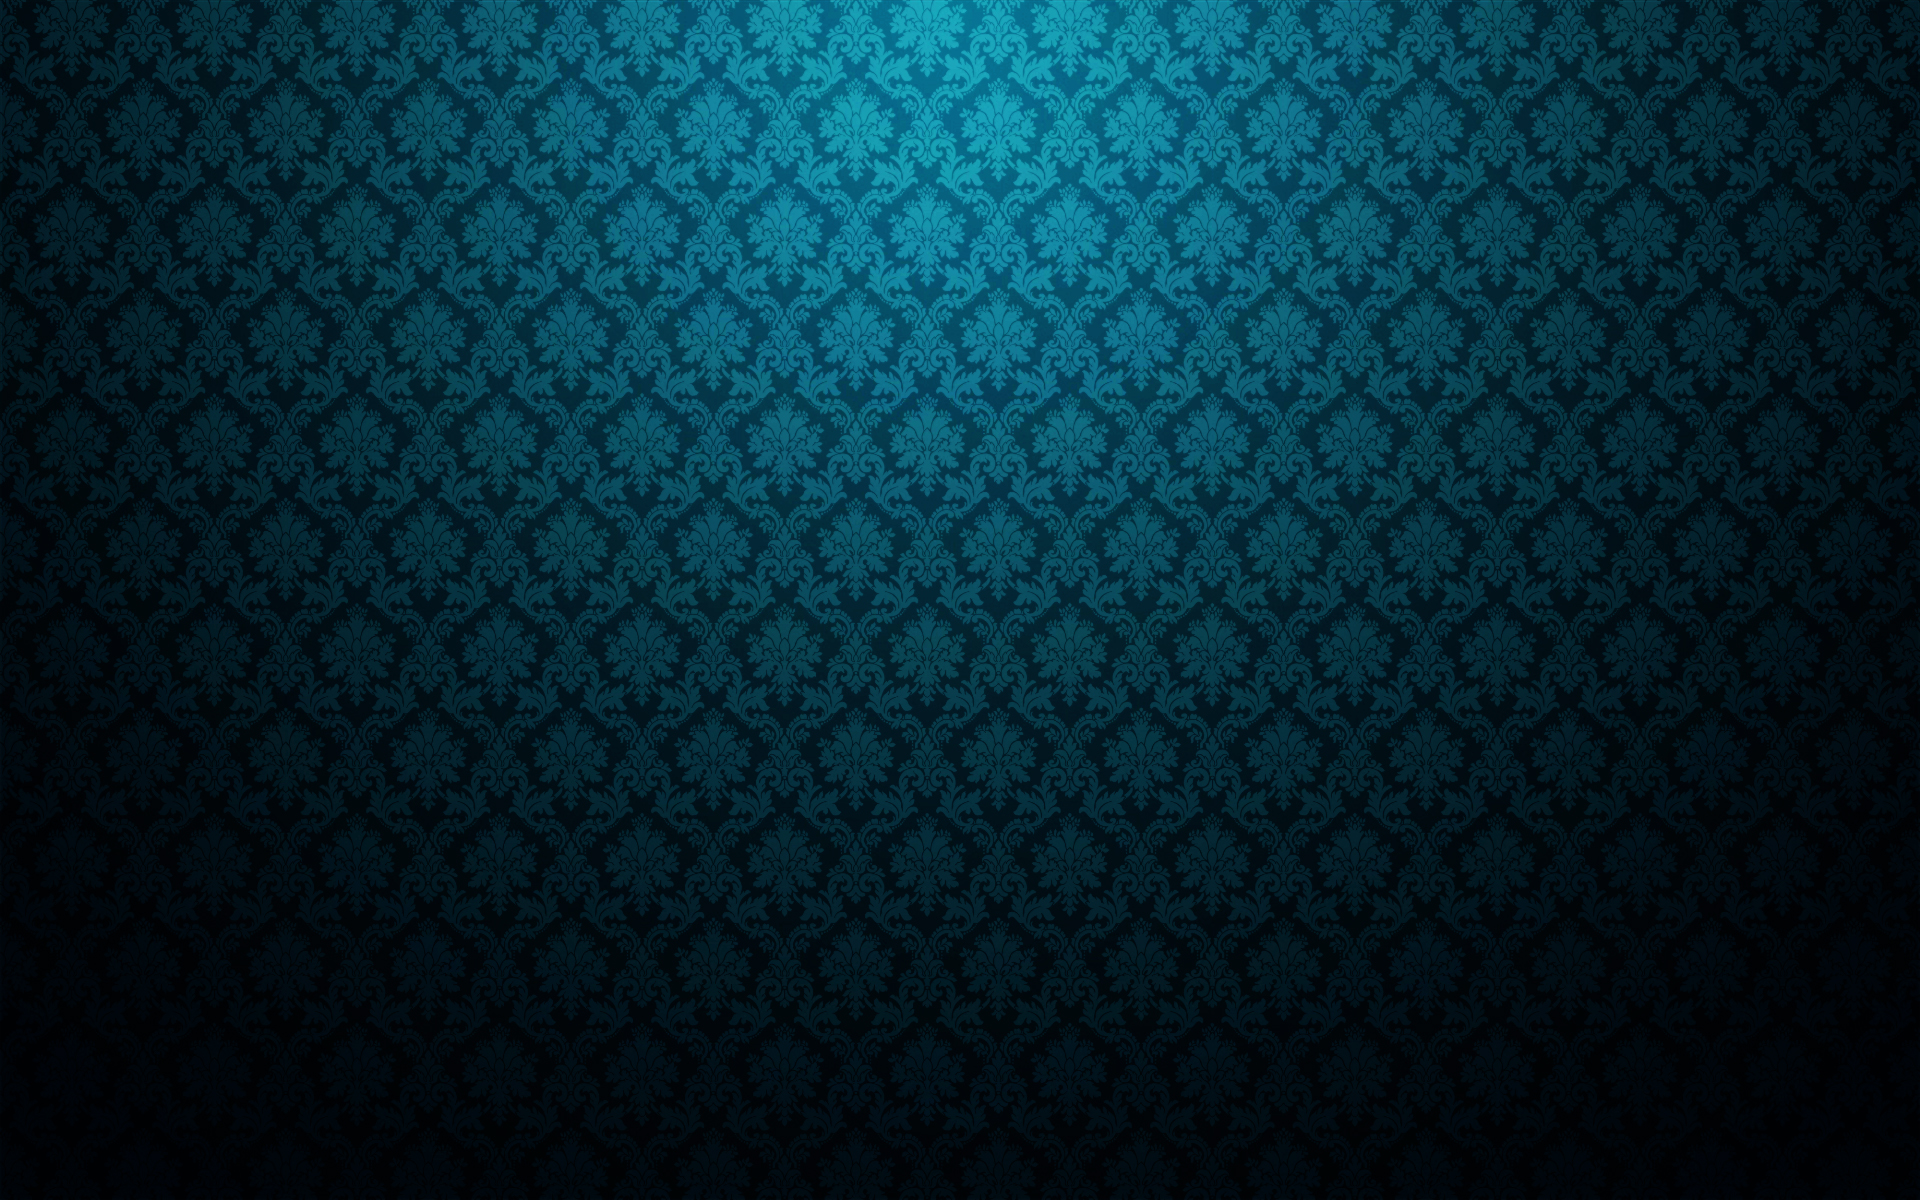 Vintage Backgrounds Wallpaper